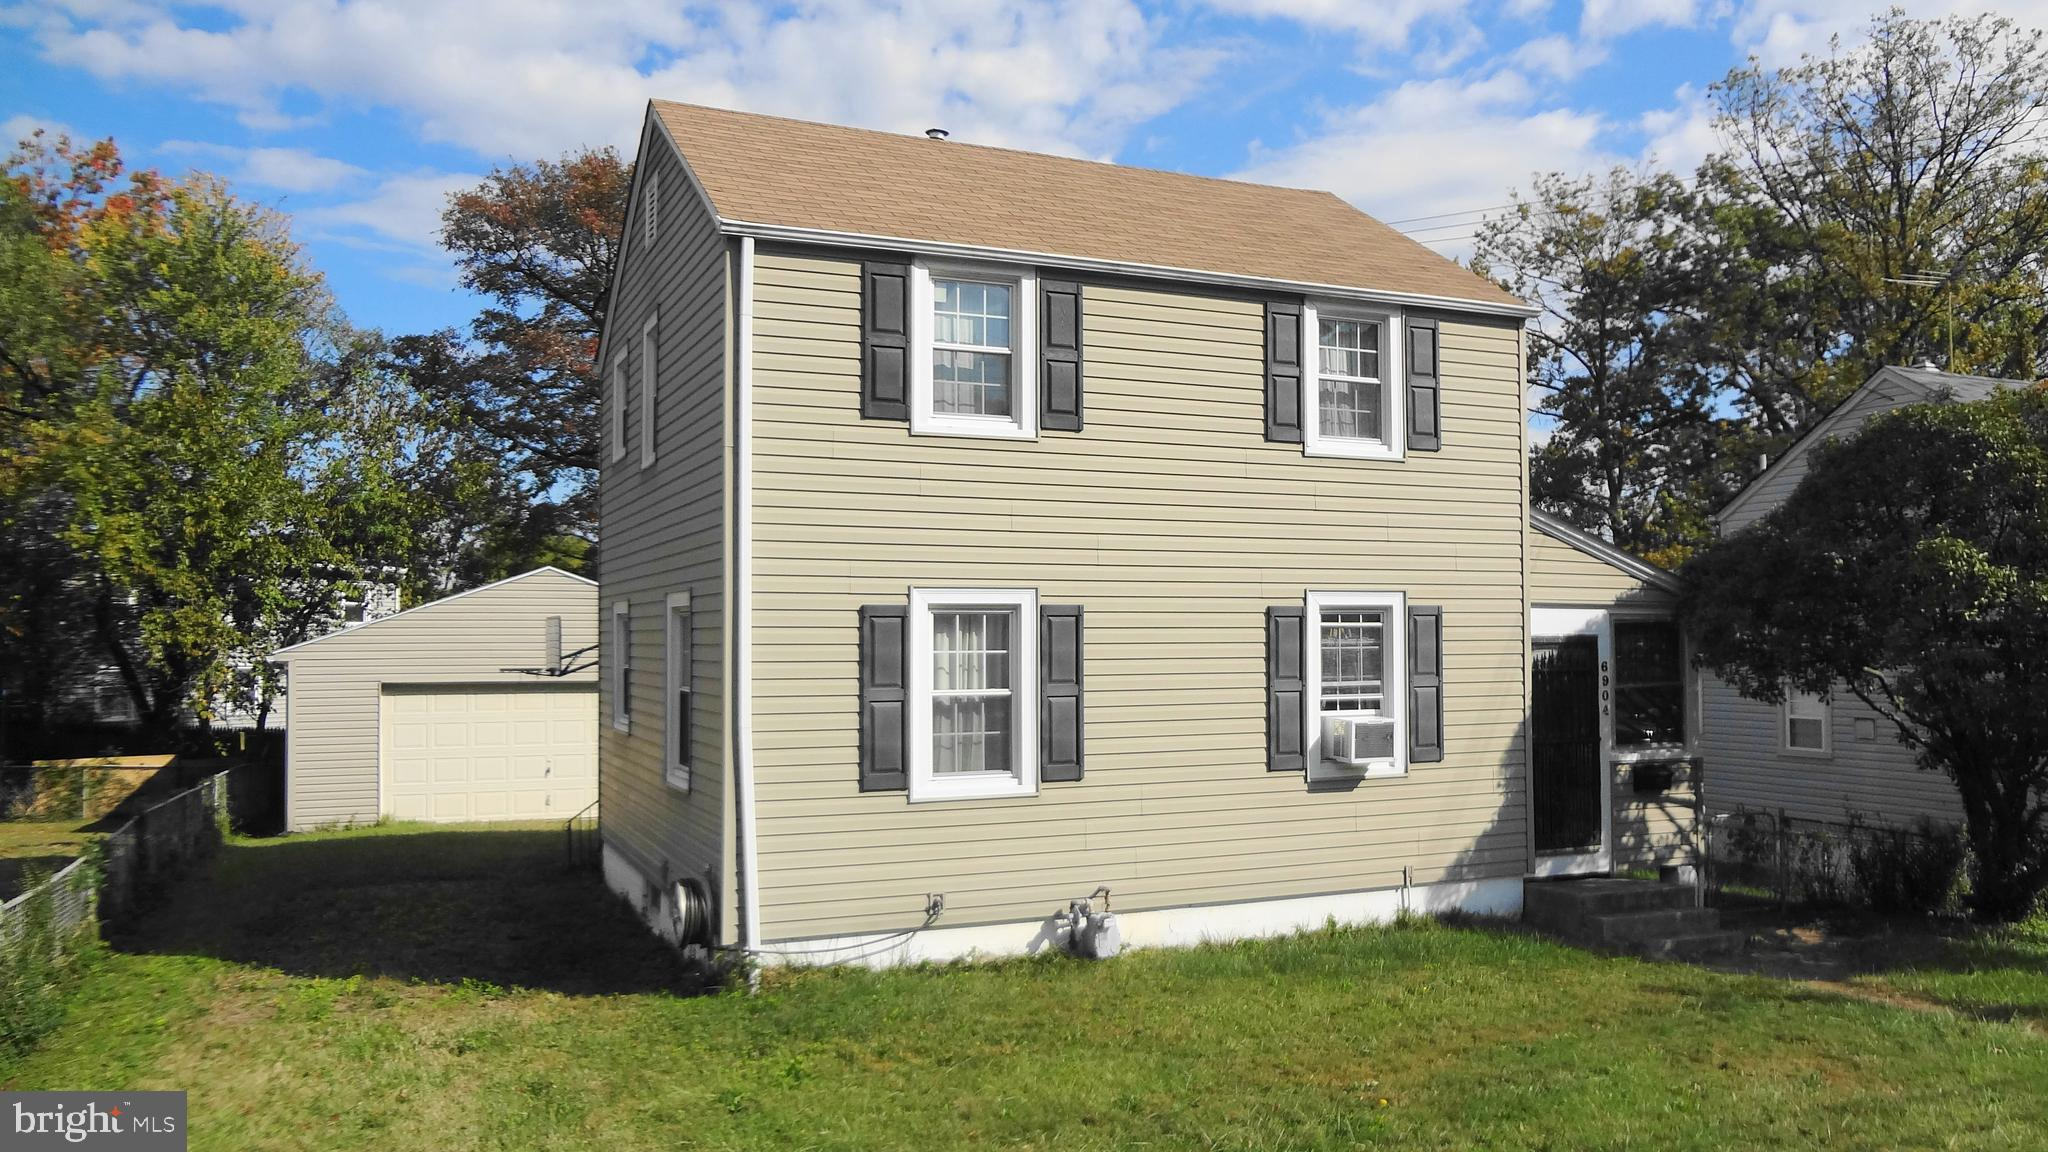 INVESTOR SPECIAL! AS-IS, CASH ONLY! NO HOA! Better hurry! Charming 3 bedroom, 1 full bath, colonial